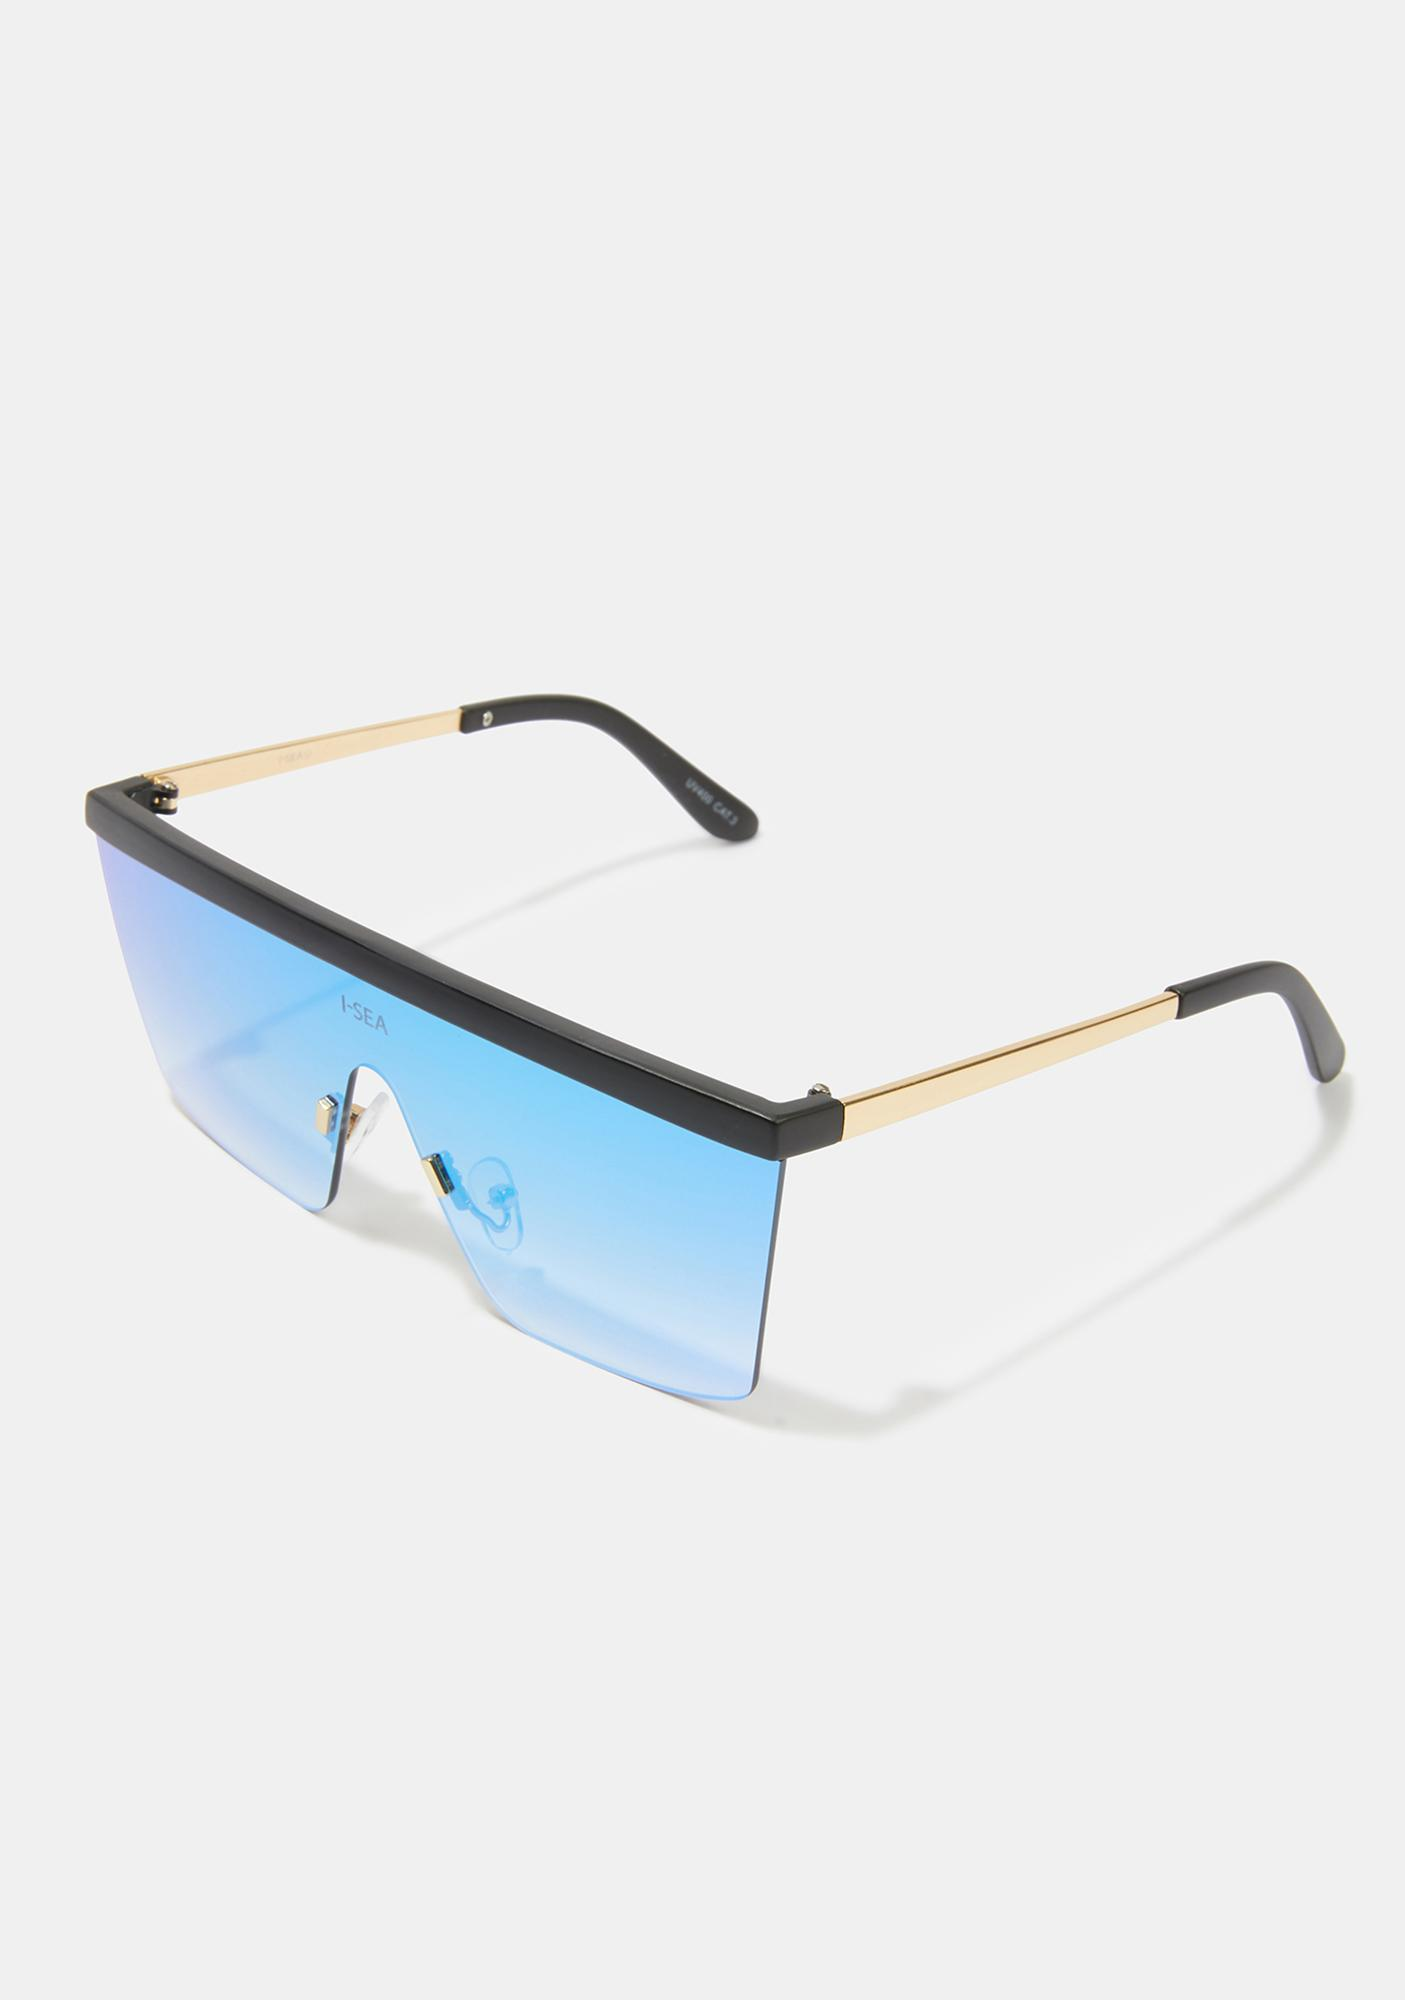 I-SEA Phoenix Gold Blue Shield Sunglasses